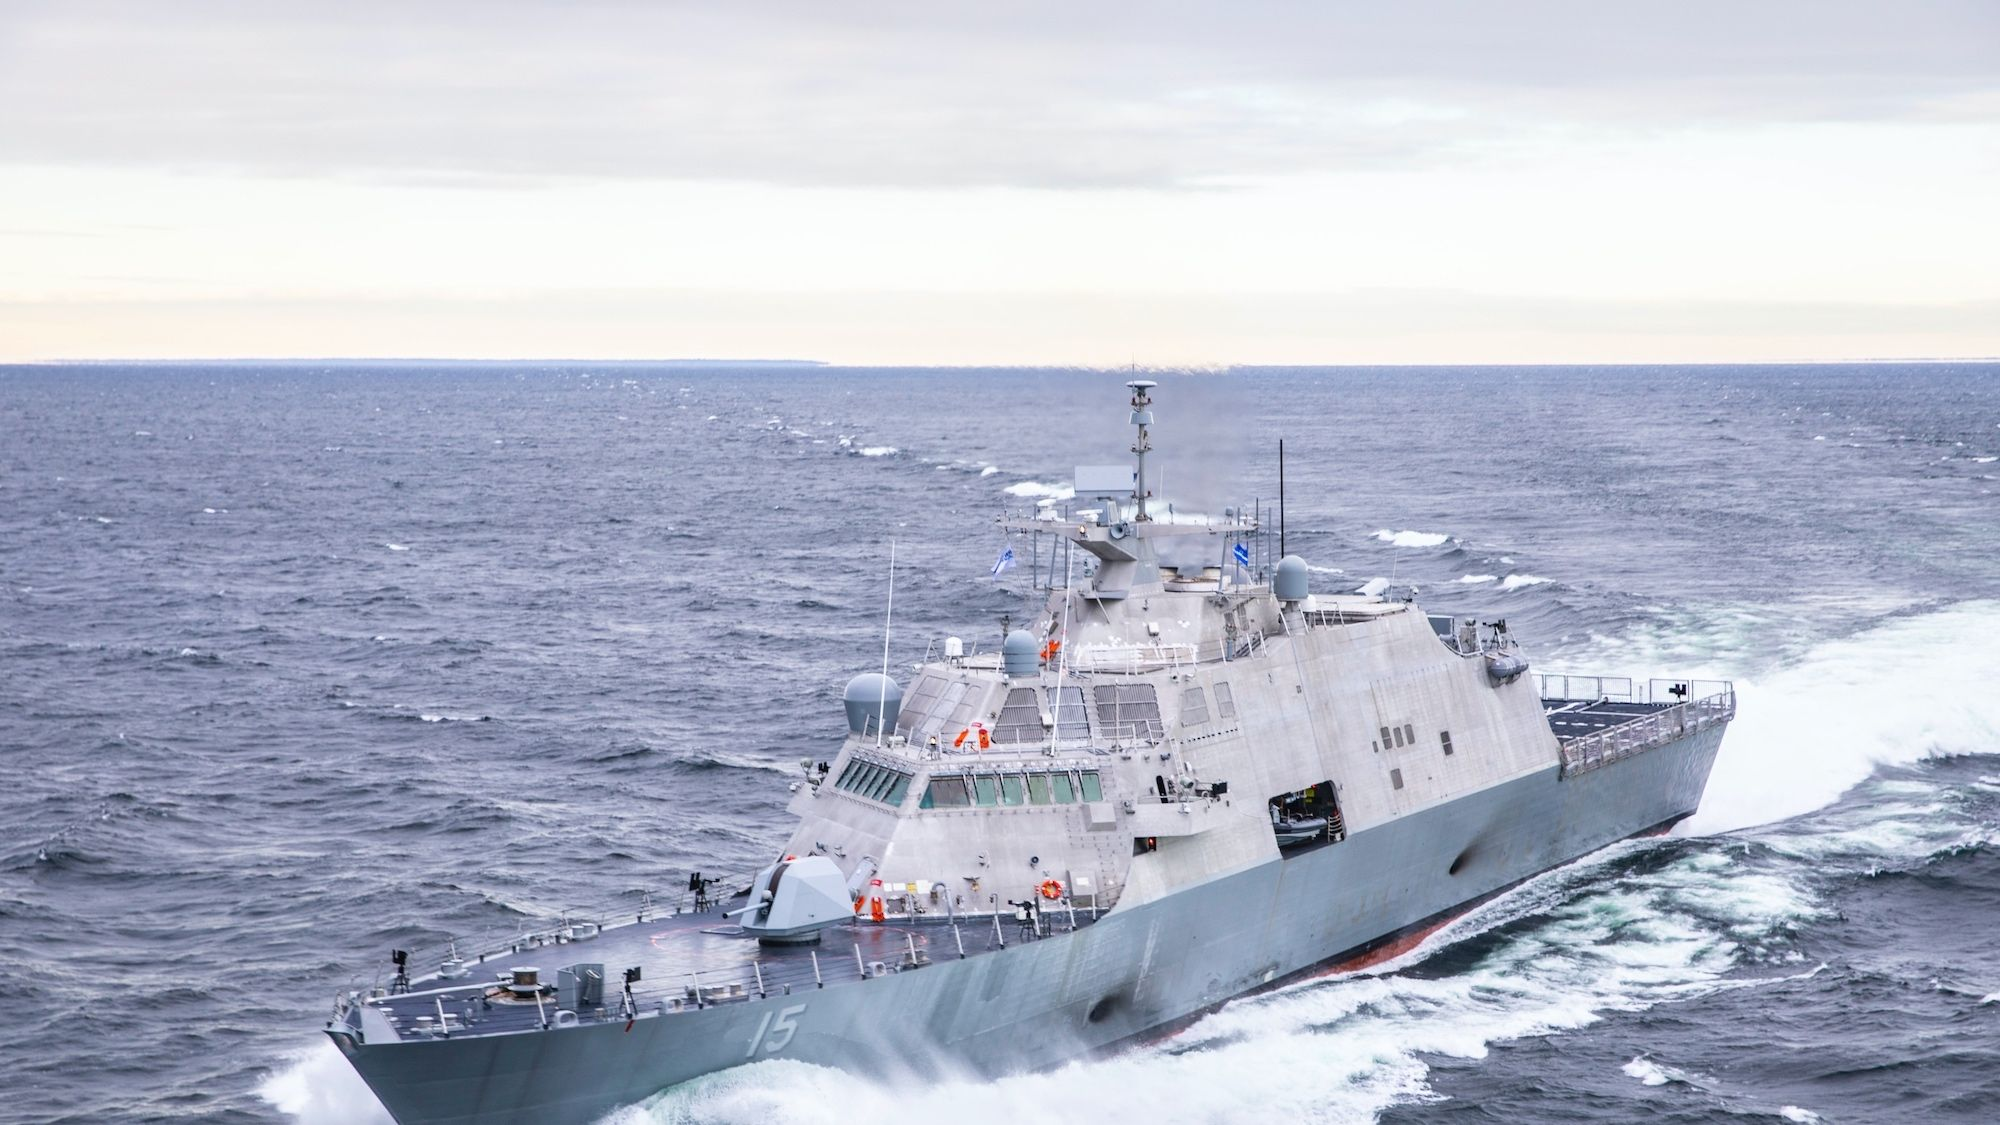 One of the Navy's New Warships Just Crashed in Canada